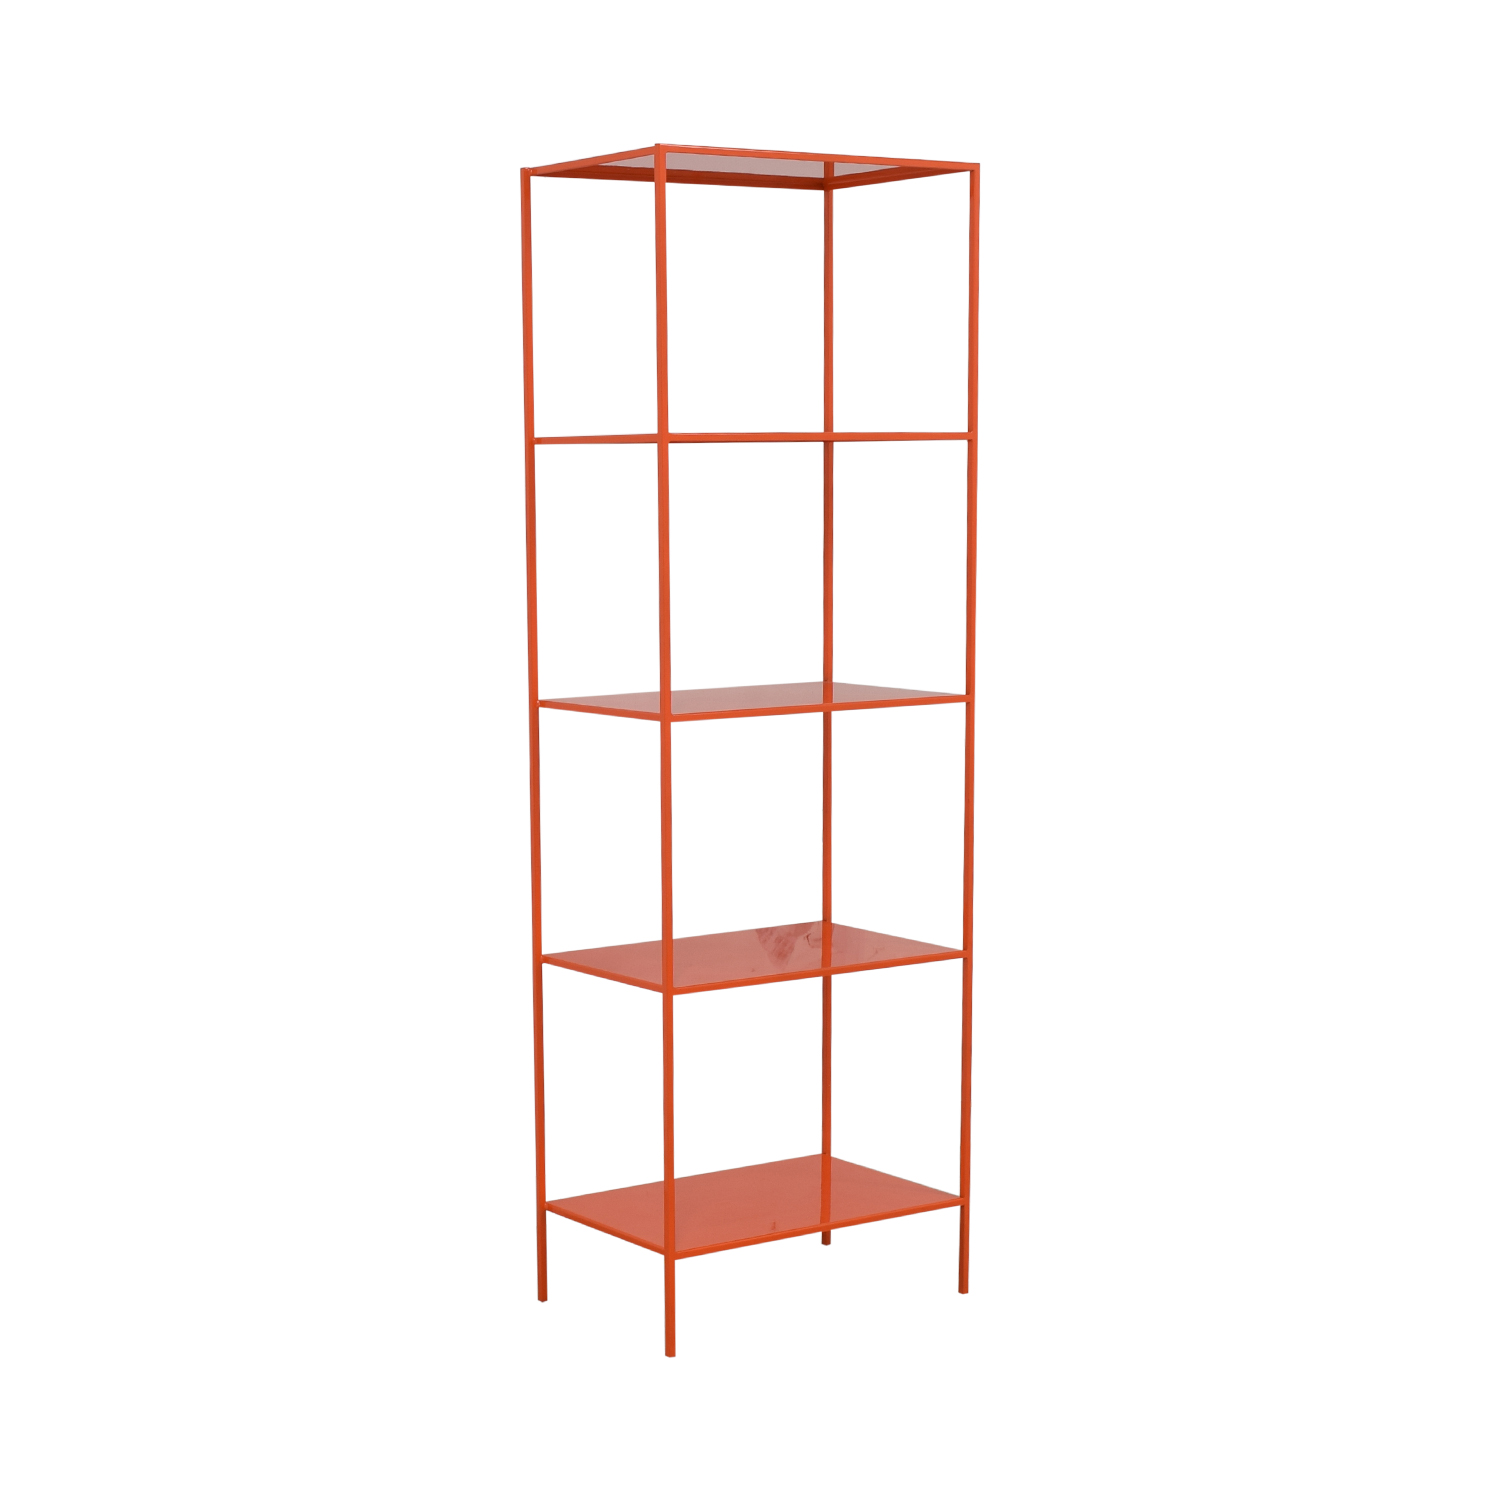 buy Room & Board Room & Board Orange Bookshelf online